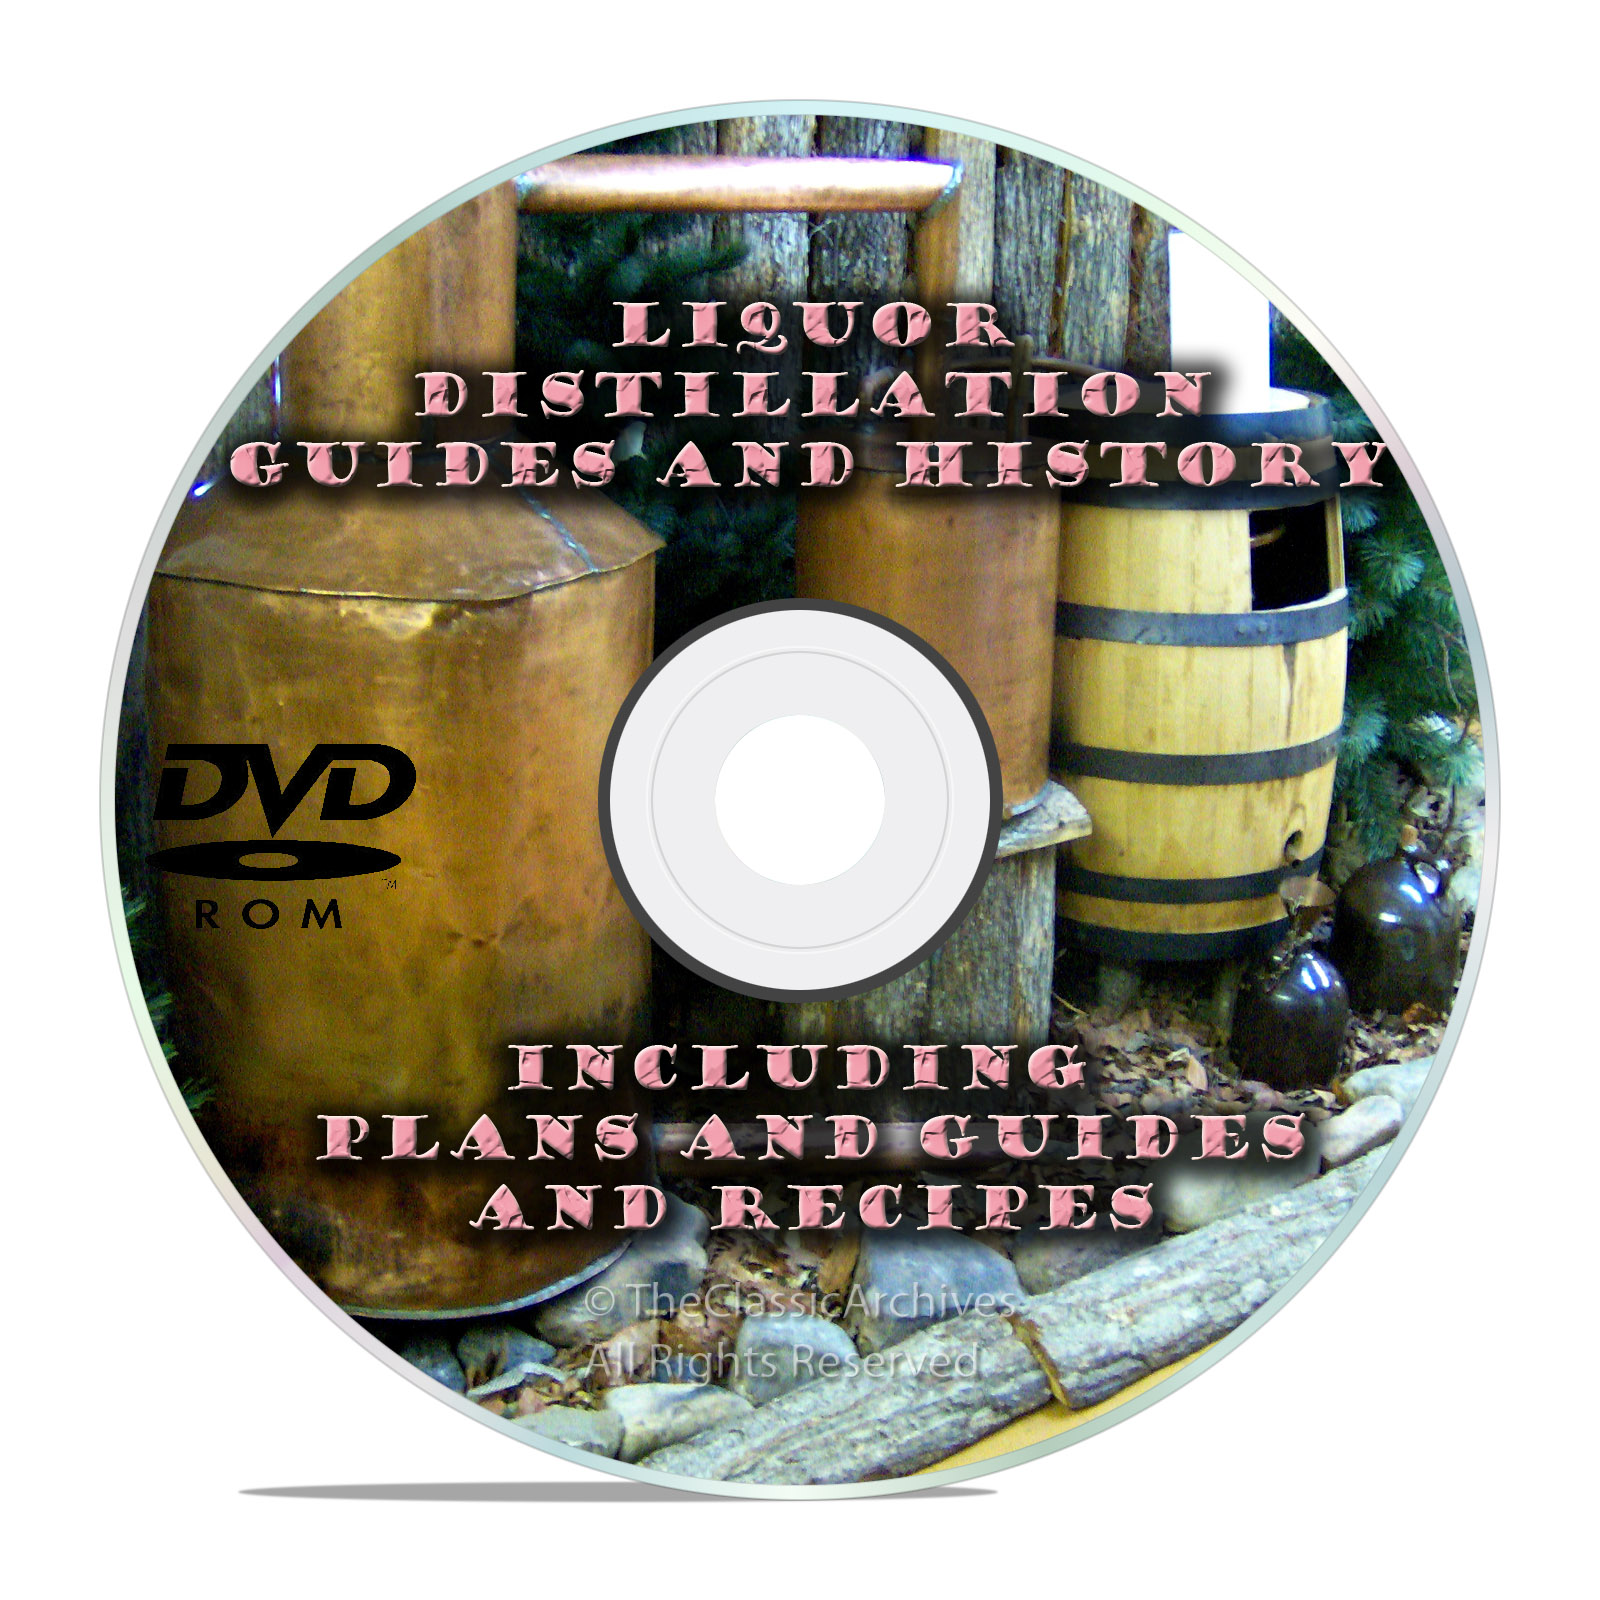 The Complete Distiller, Moonshine Still Plans and Guides on DVD